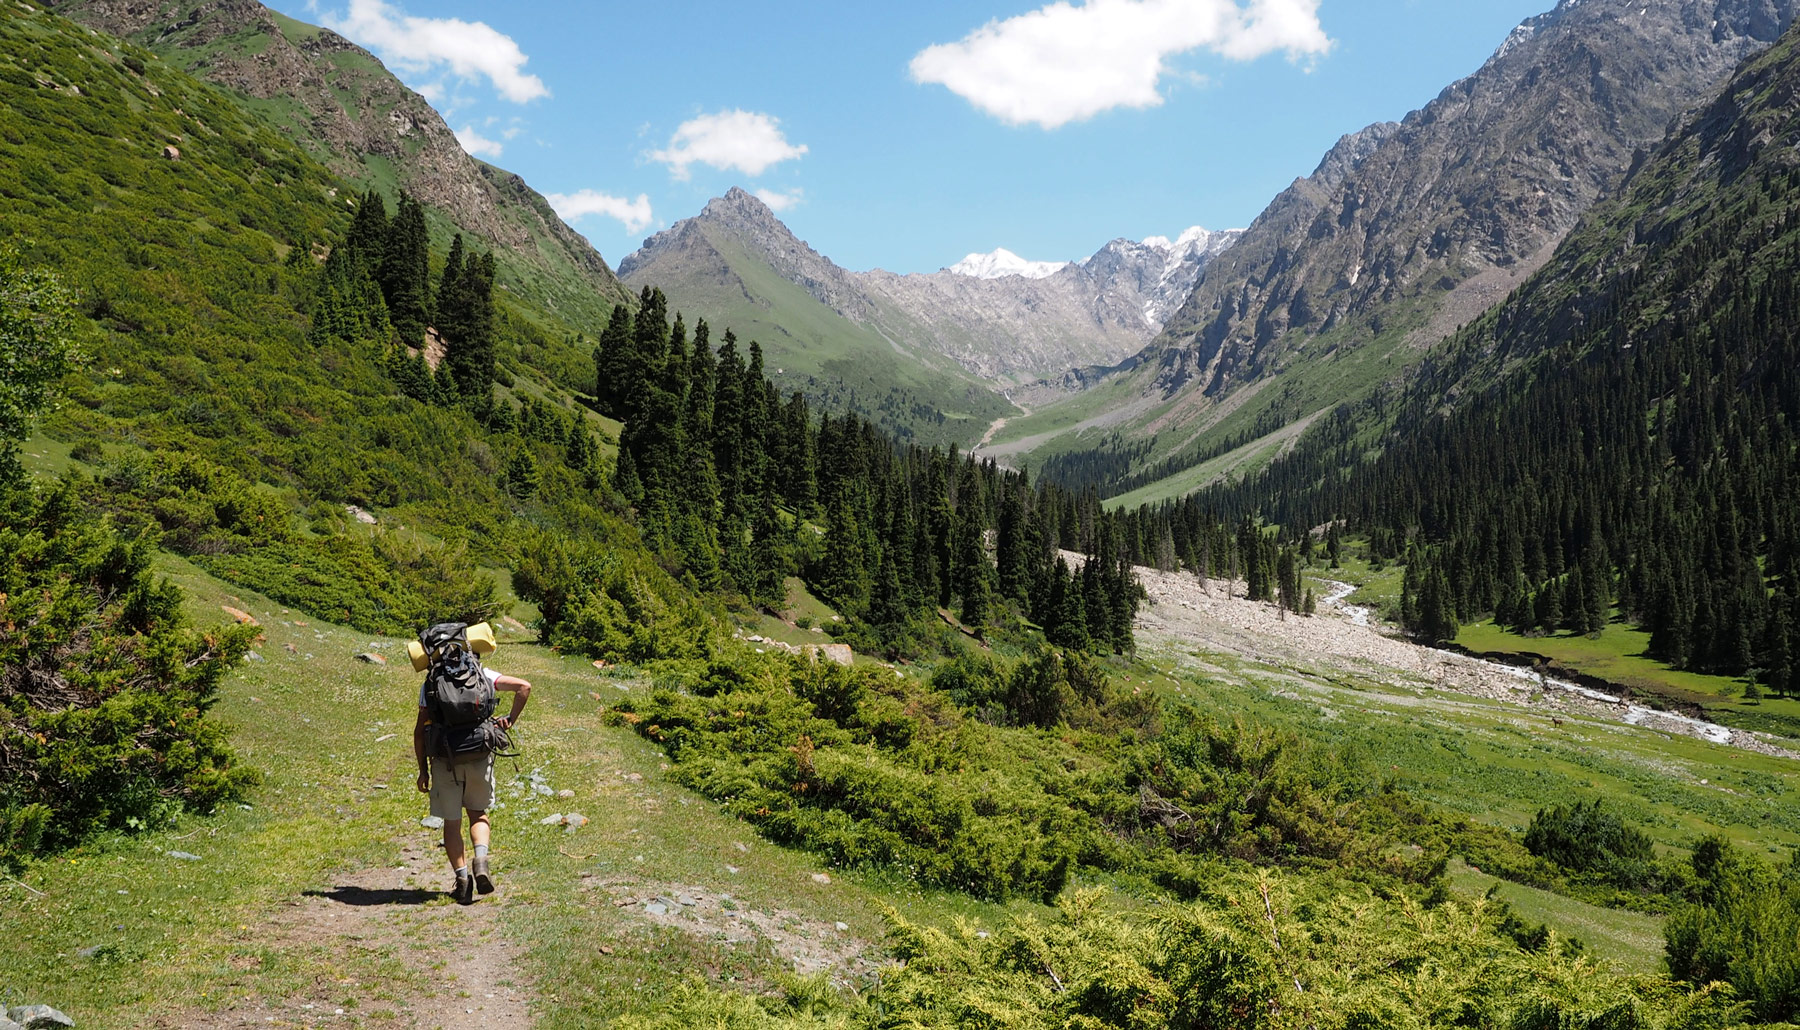 Hiking Ala Too Kyrgyzstan Tours - Travel Agency